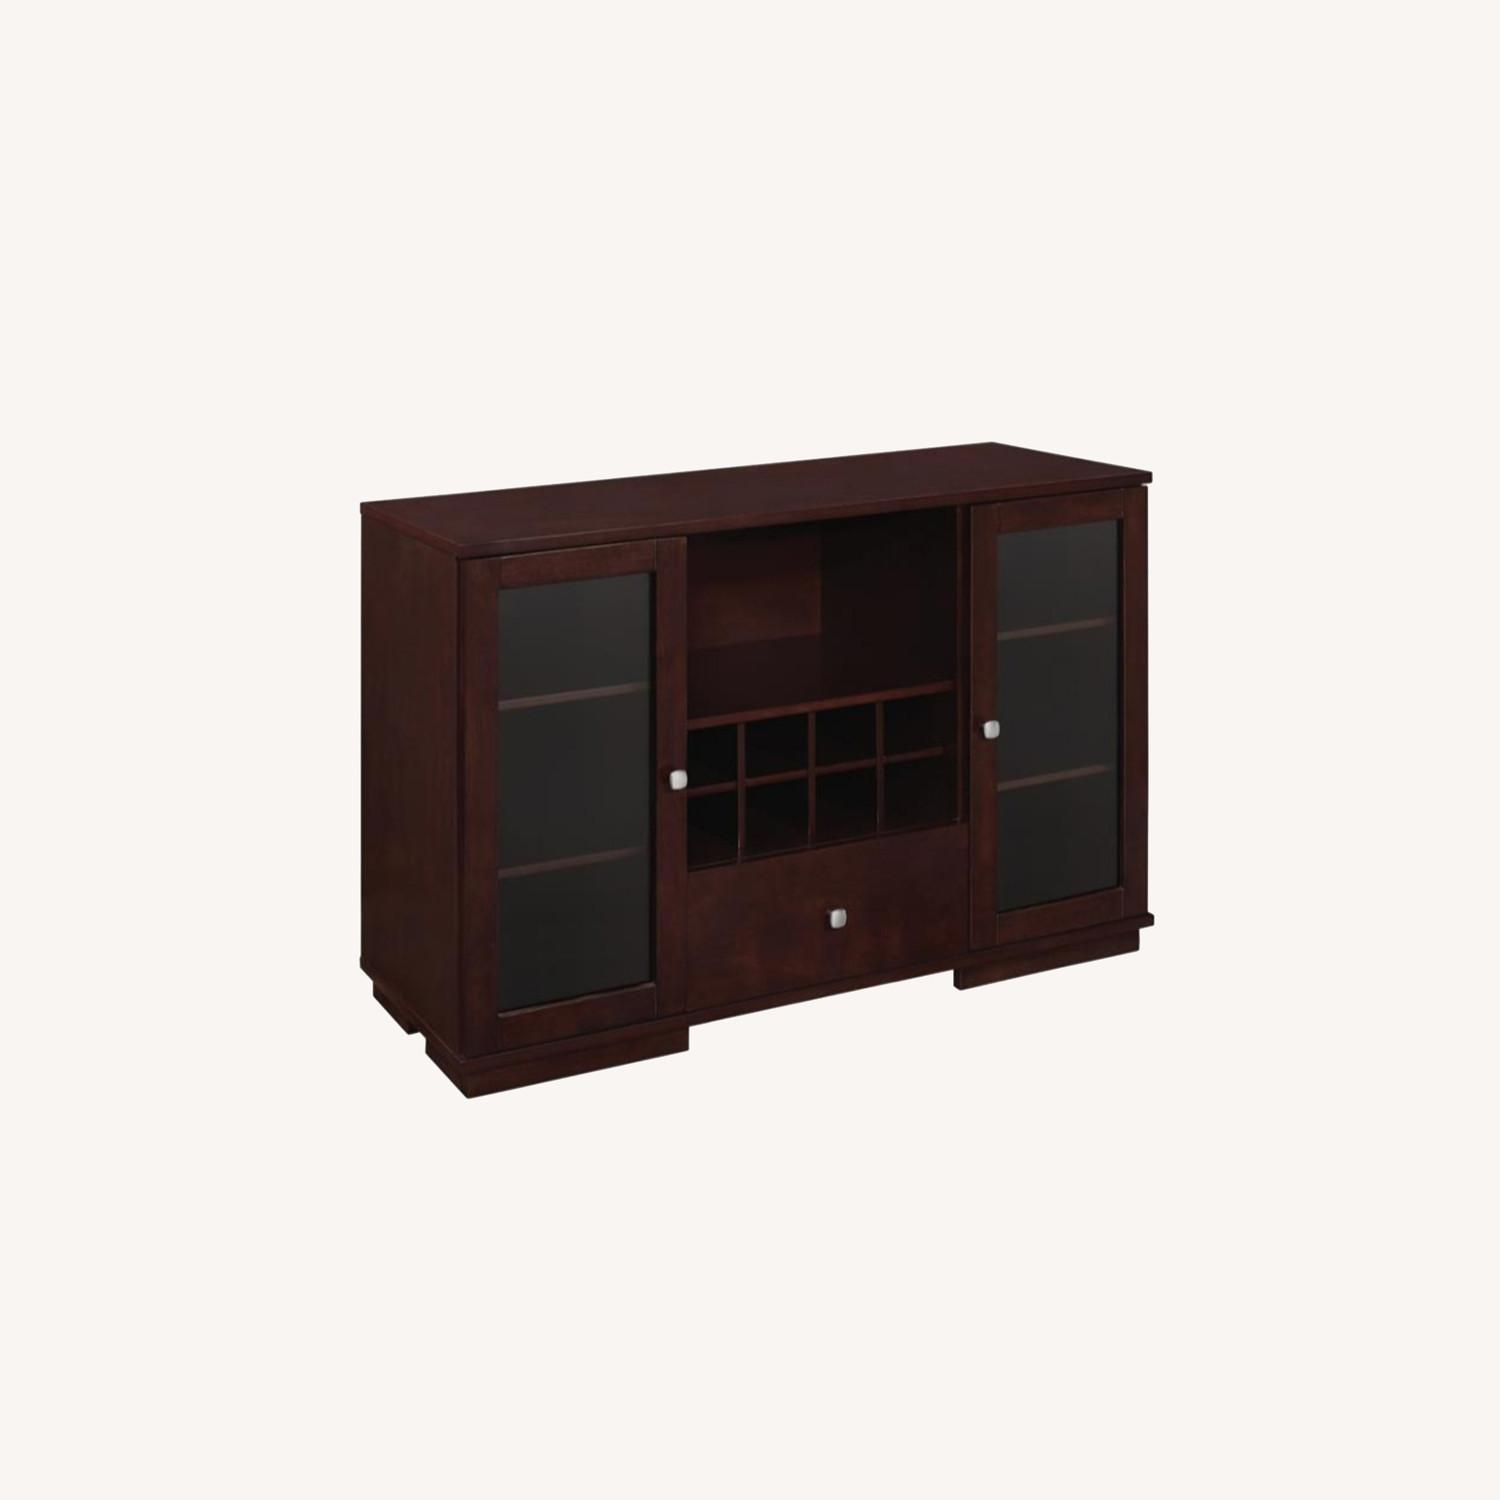 Server In Cappuccino Finish W/ Built-In Wine Rack - image-3